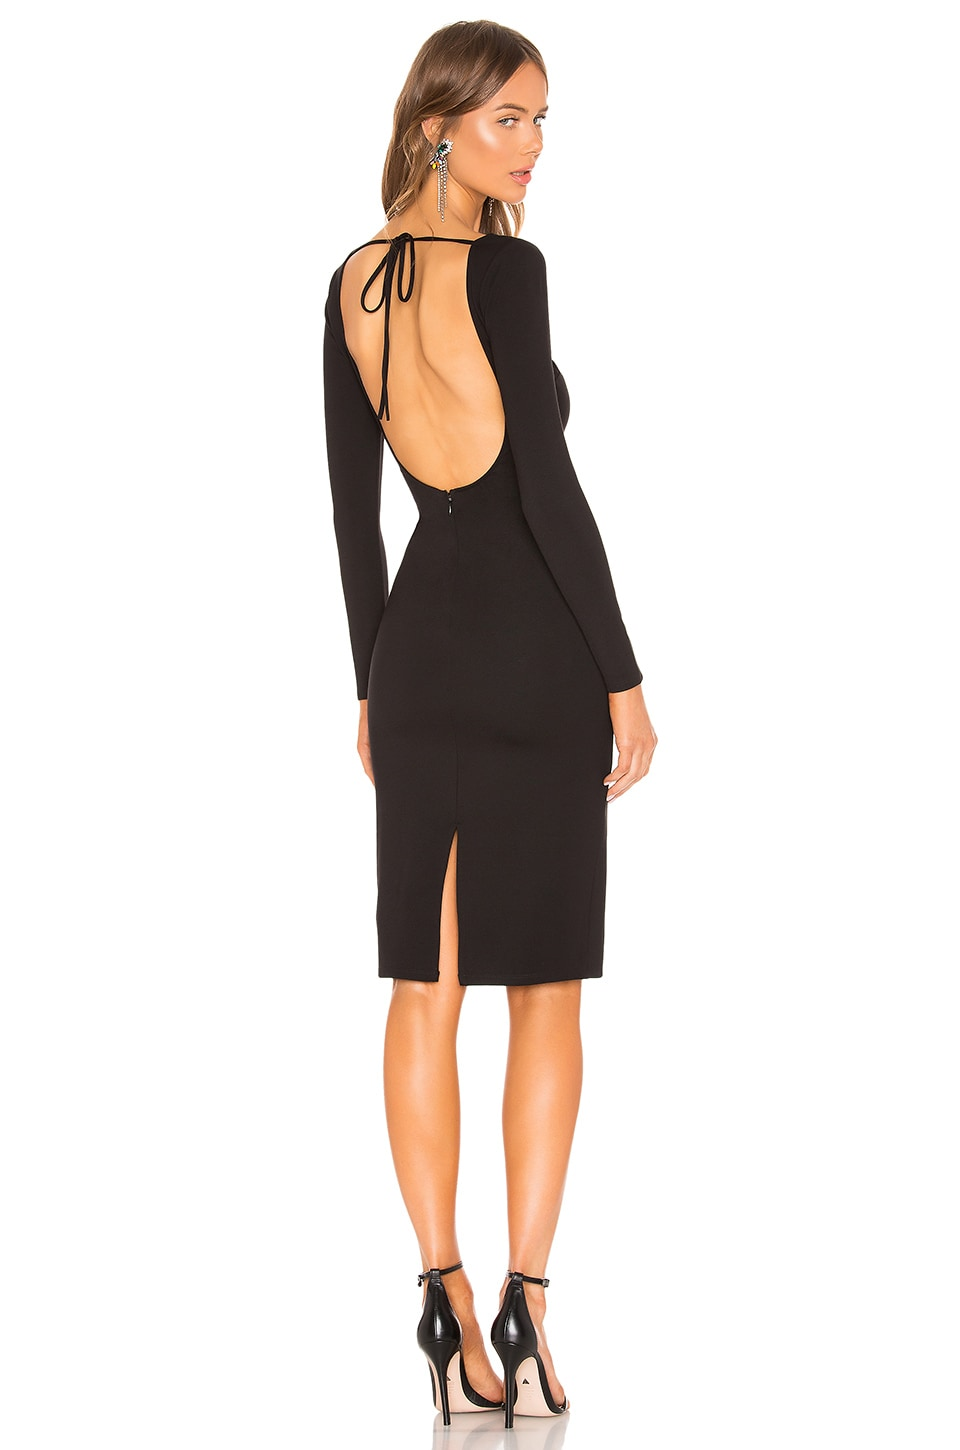 LPA Bello Dress in Black